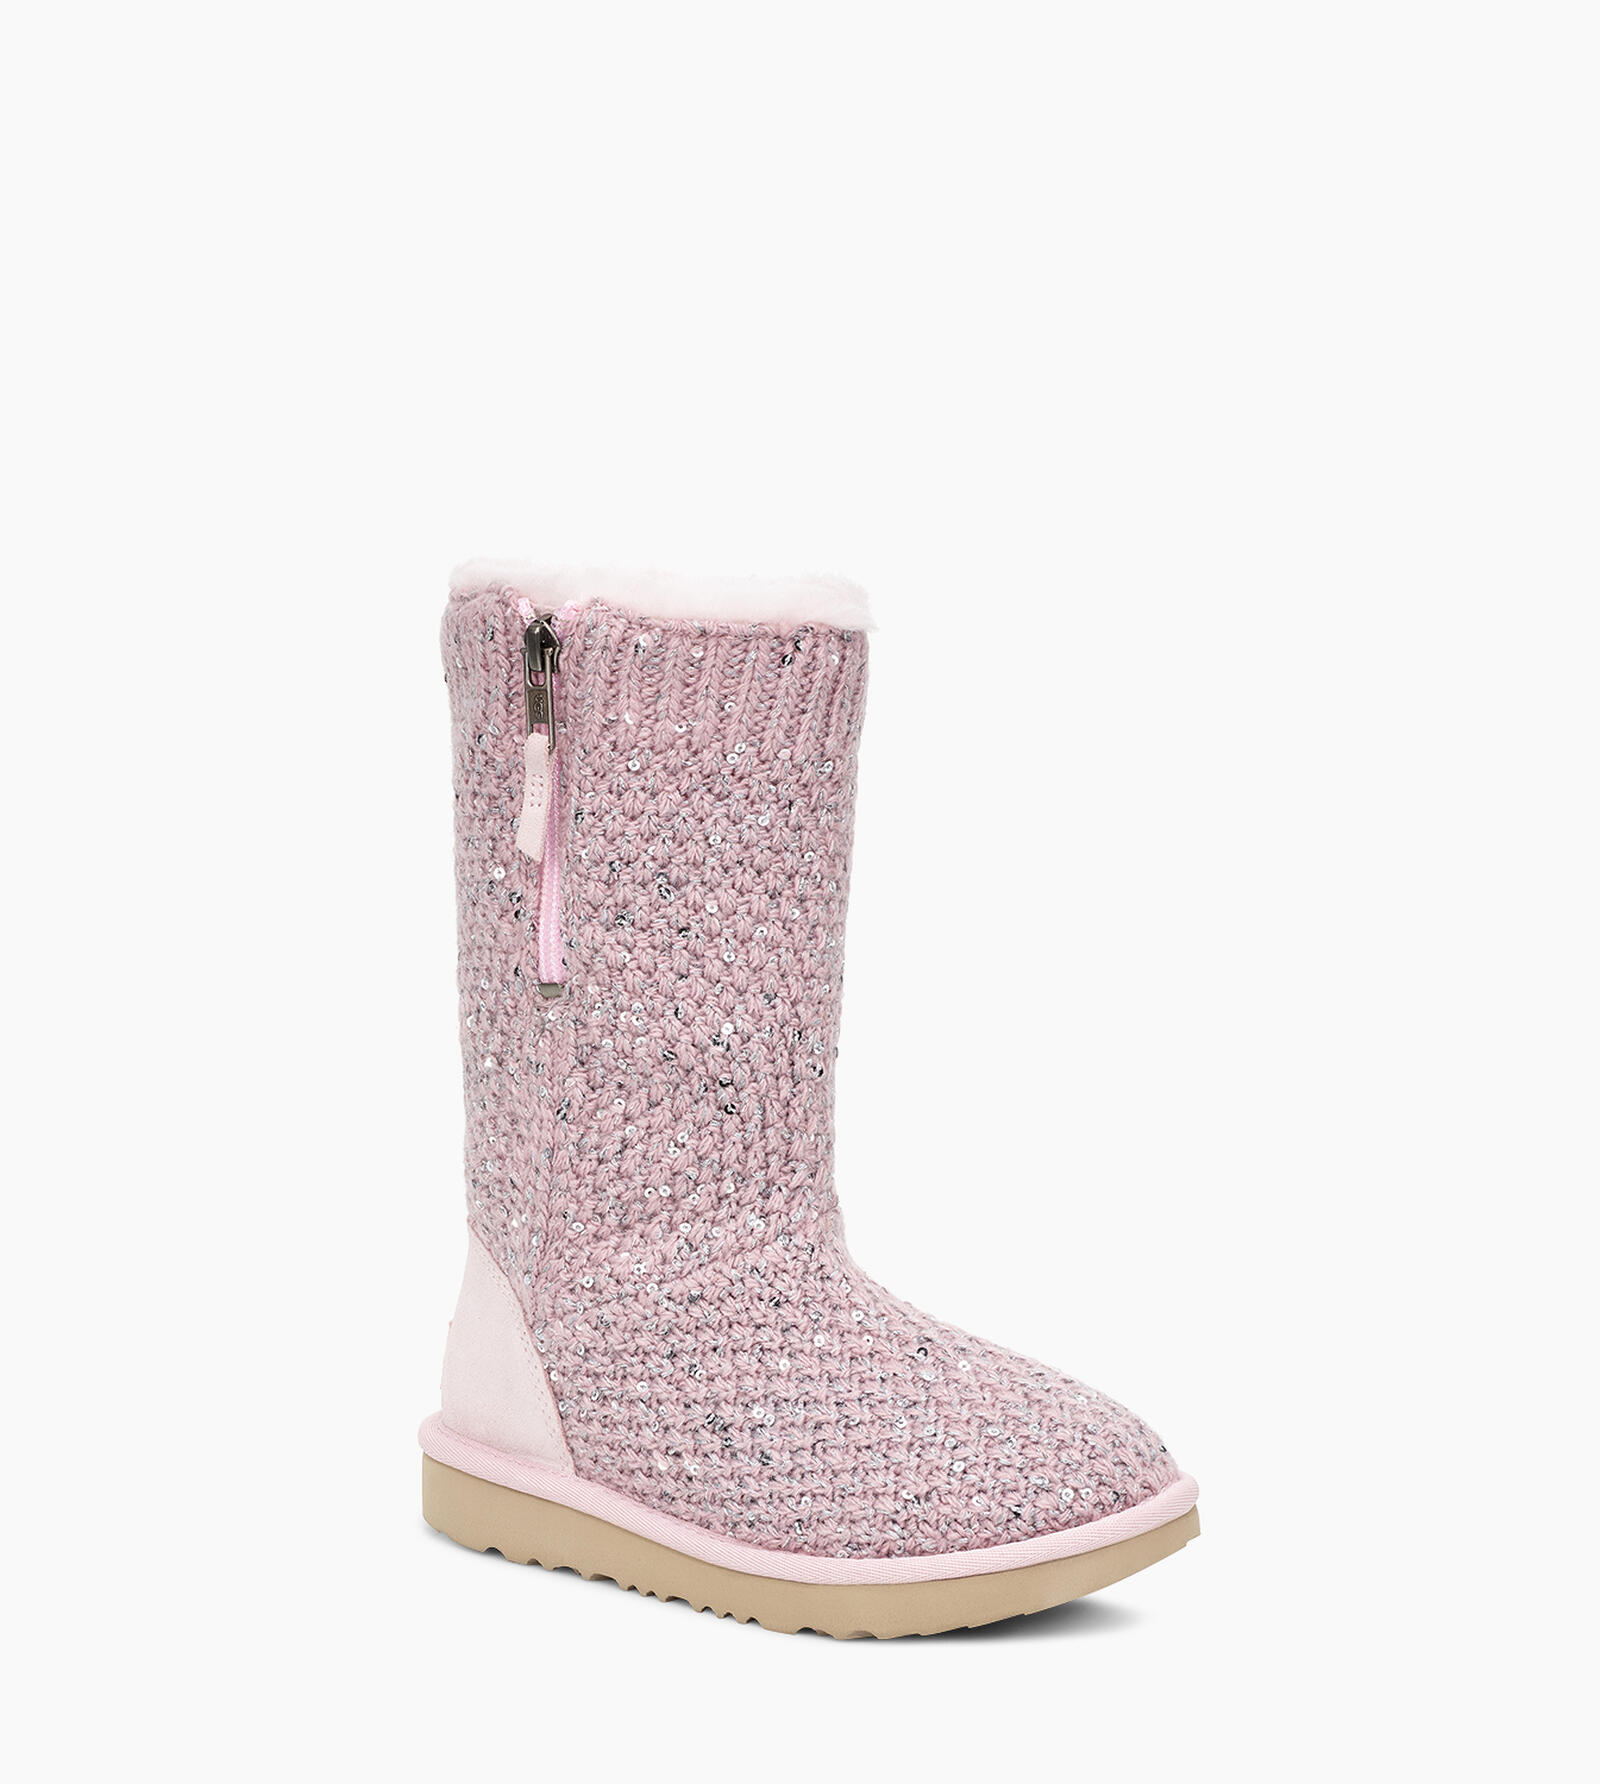 Sequin Knit Boot